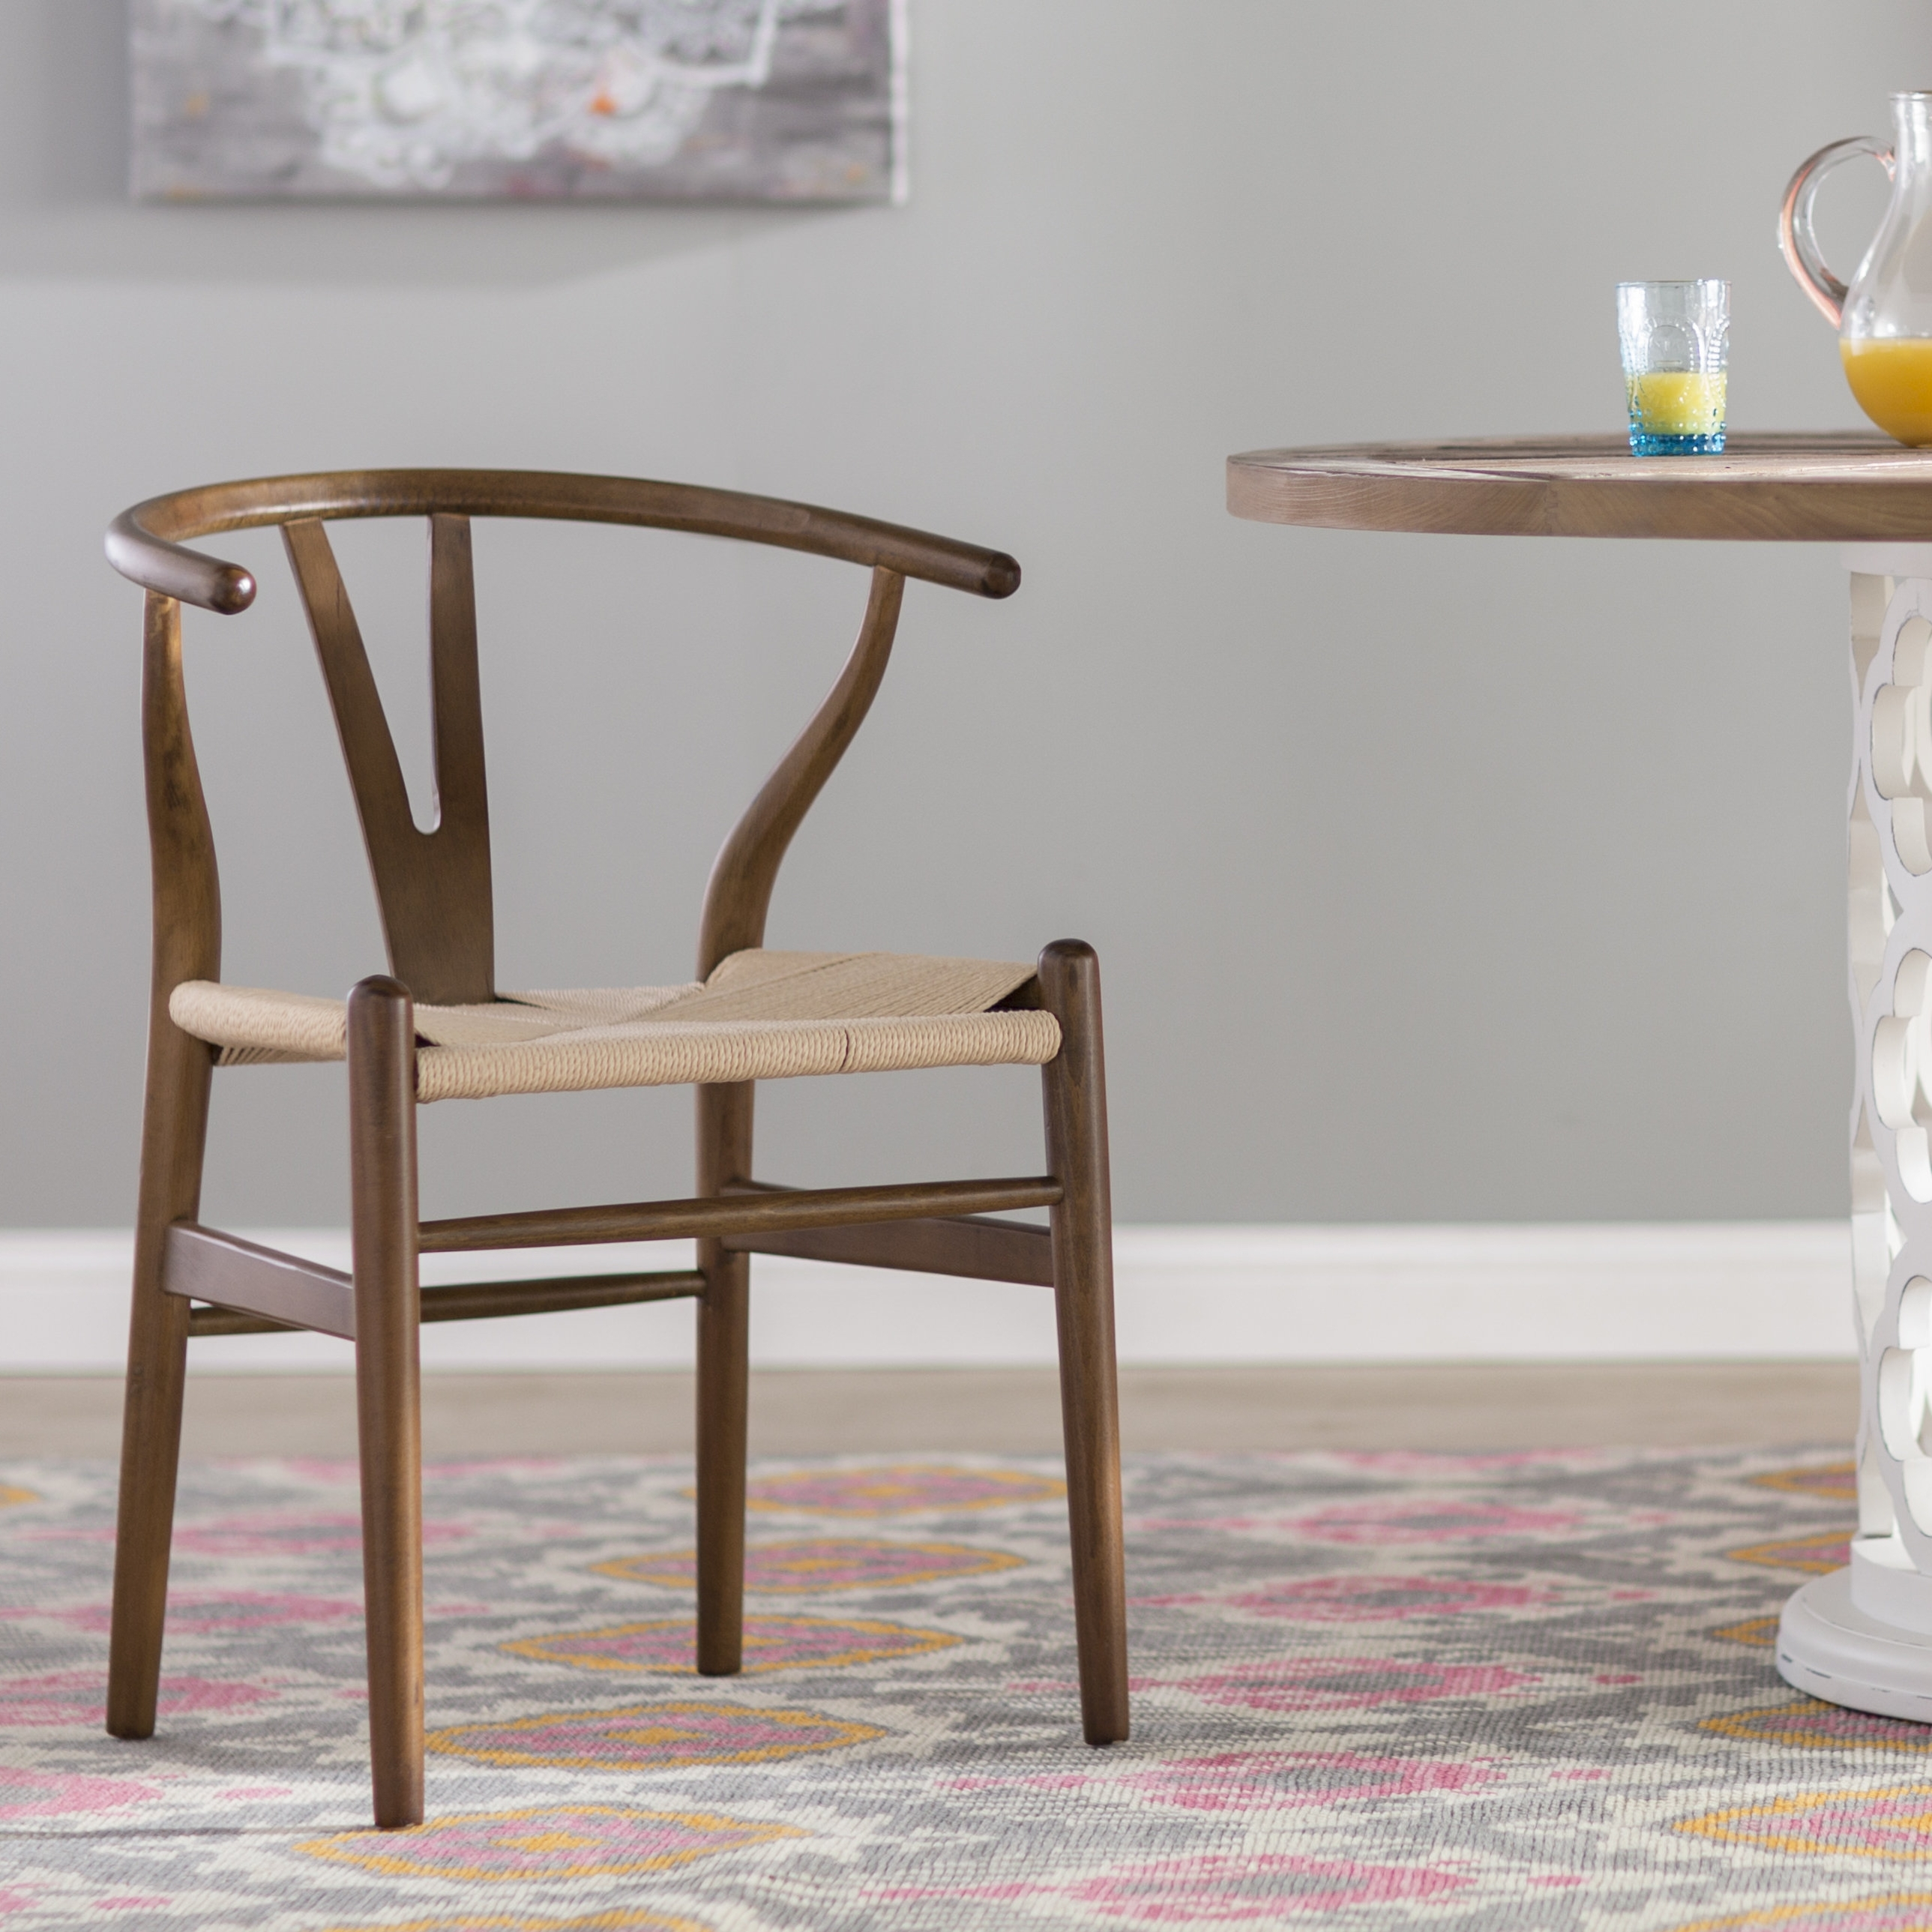 Popular Mistana Dayanara Solid Wood Dining Chair & Reviews (View 25 of 25)